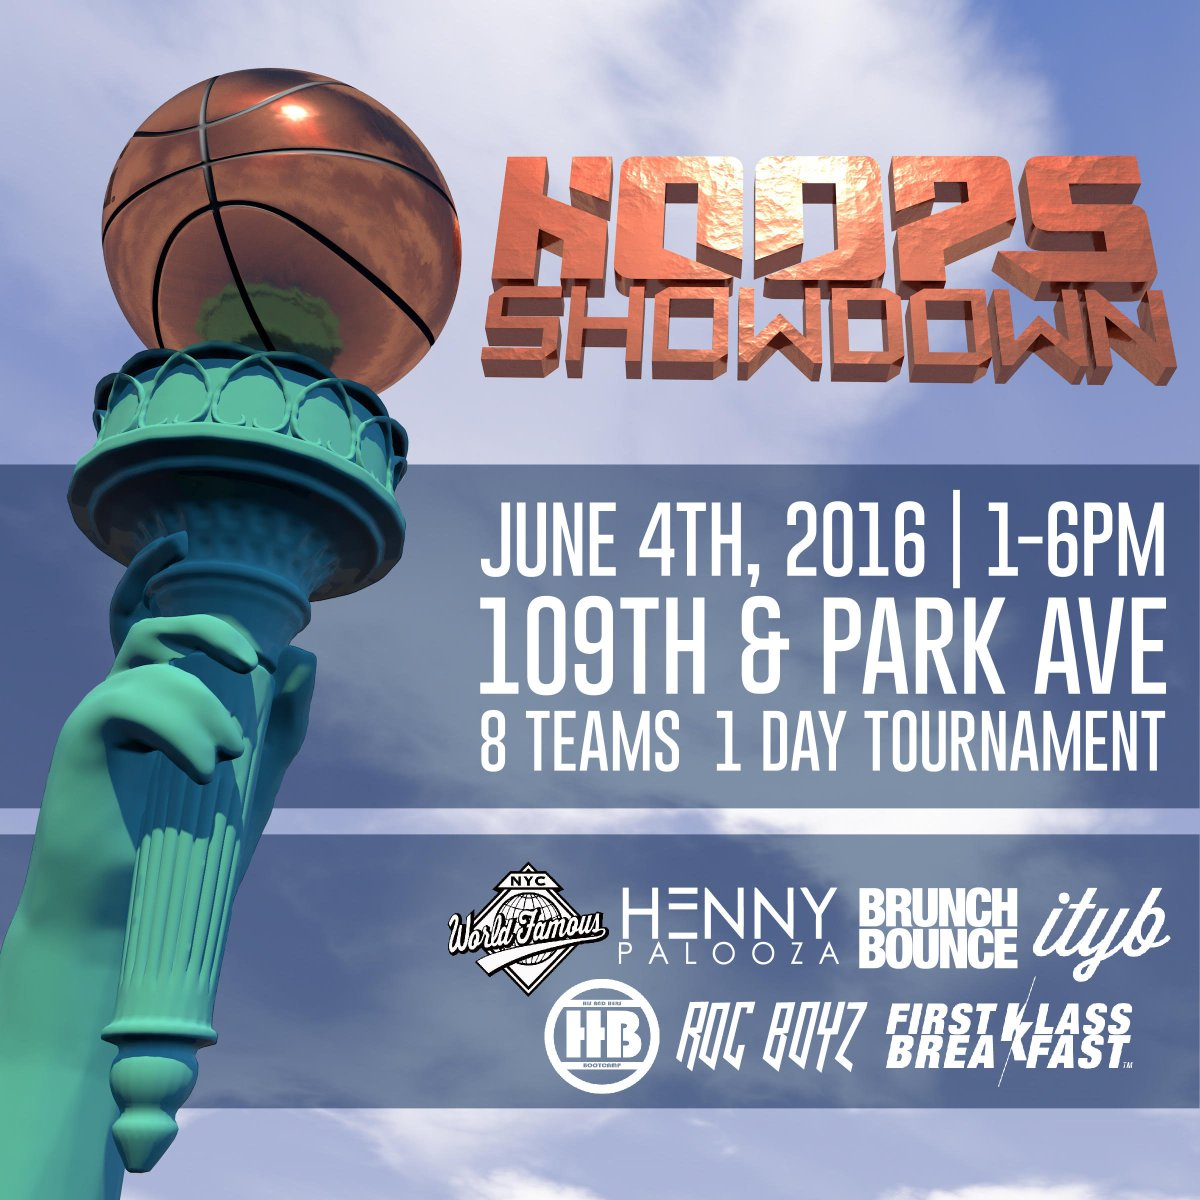 #HoopsShowdown Tournament are looking for FOOD TRUCKS! Event is on June 6th from 1-7PM in 109 St. And Park! https://t.co/VXWGUCBsor